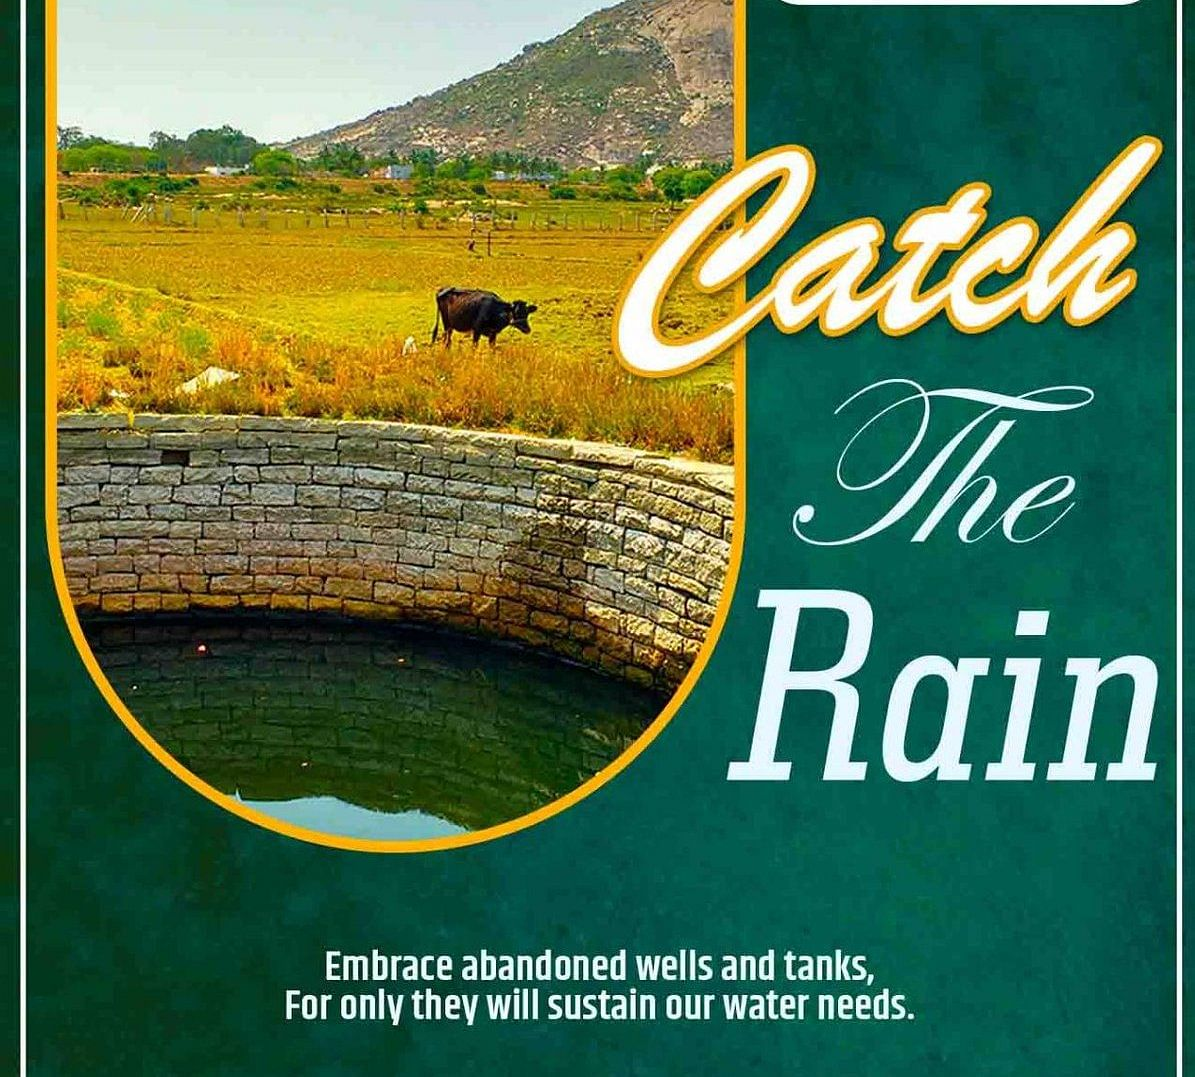 """The campaign with the theme - """"Catch the Rain where it falls, when it falls"""" - was launched by Prime Minister Narendra Modi on World Water Day on March 22 this year"""